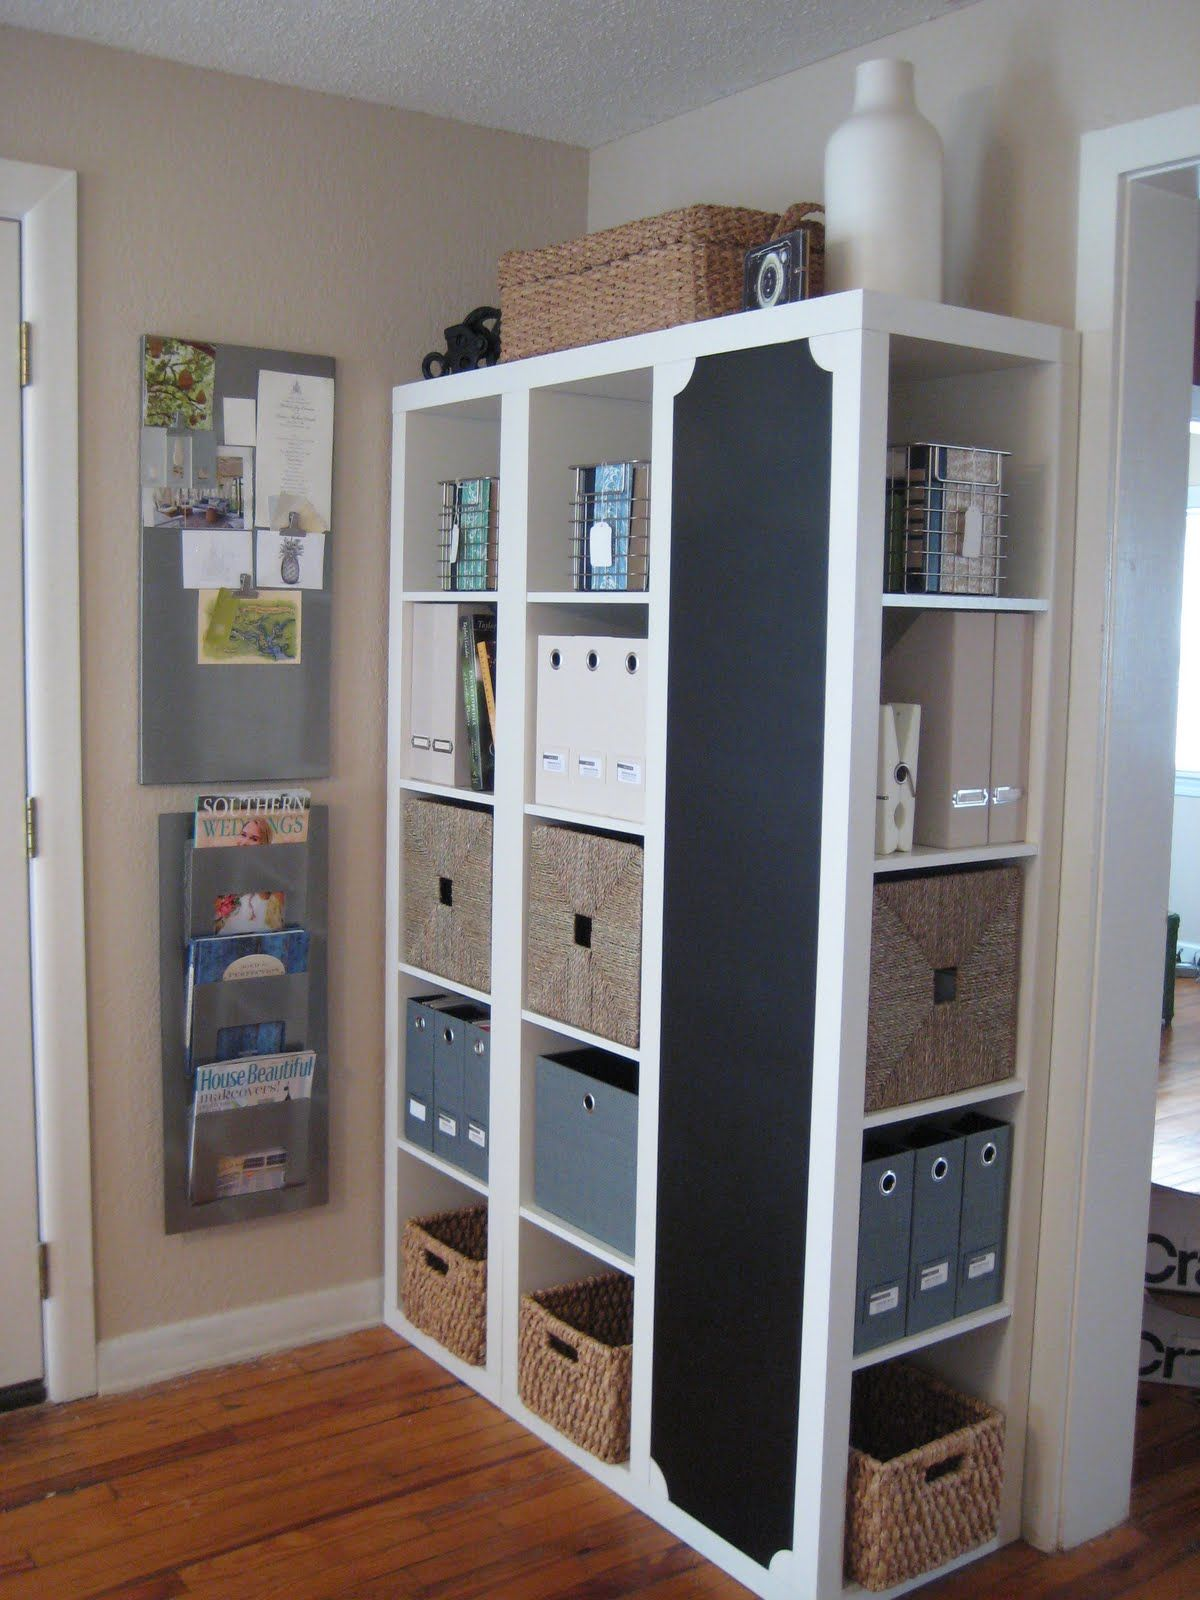 isn't this clever? 3 tall bookcases from ikea - one turned sideways